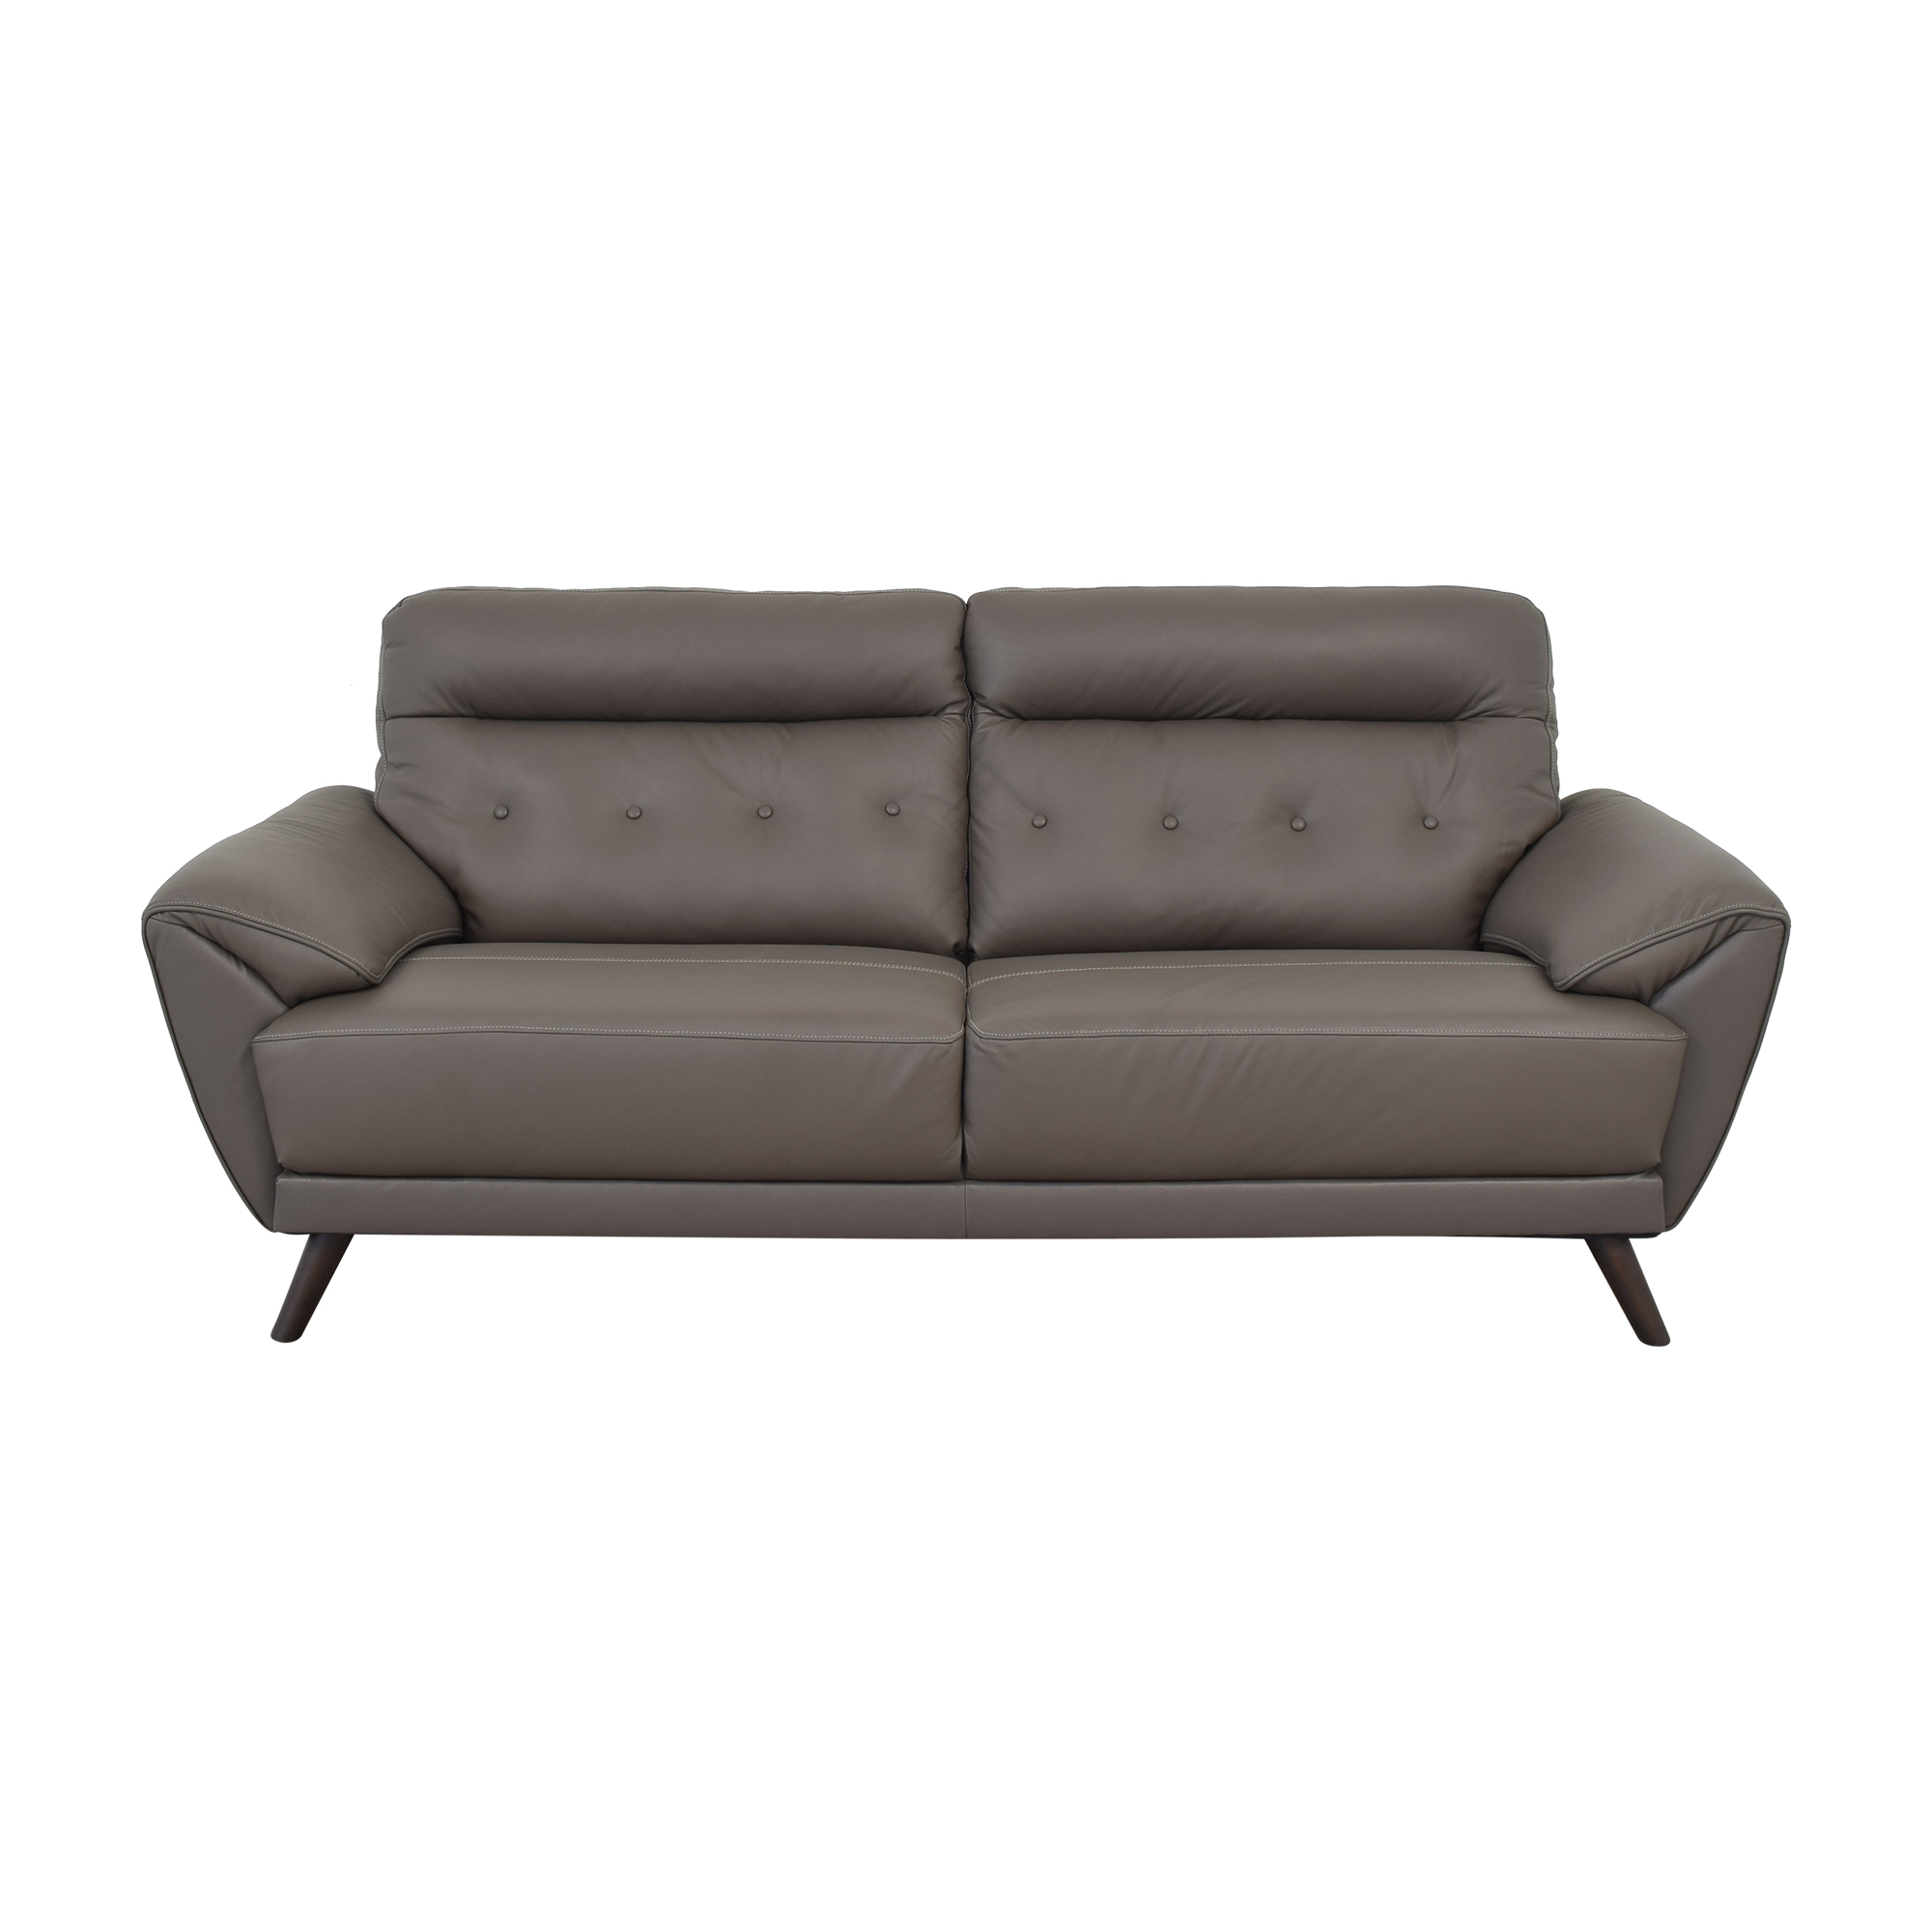 Raymour & Flanigan Raymour & Flanigan Contemporary Sofa on sale